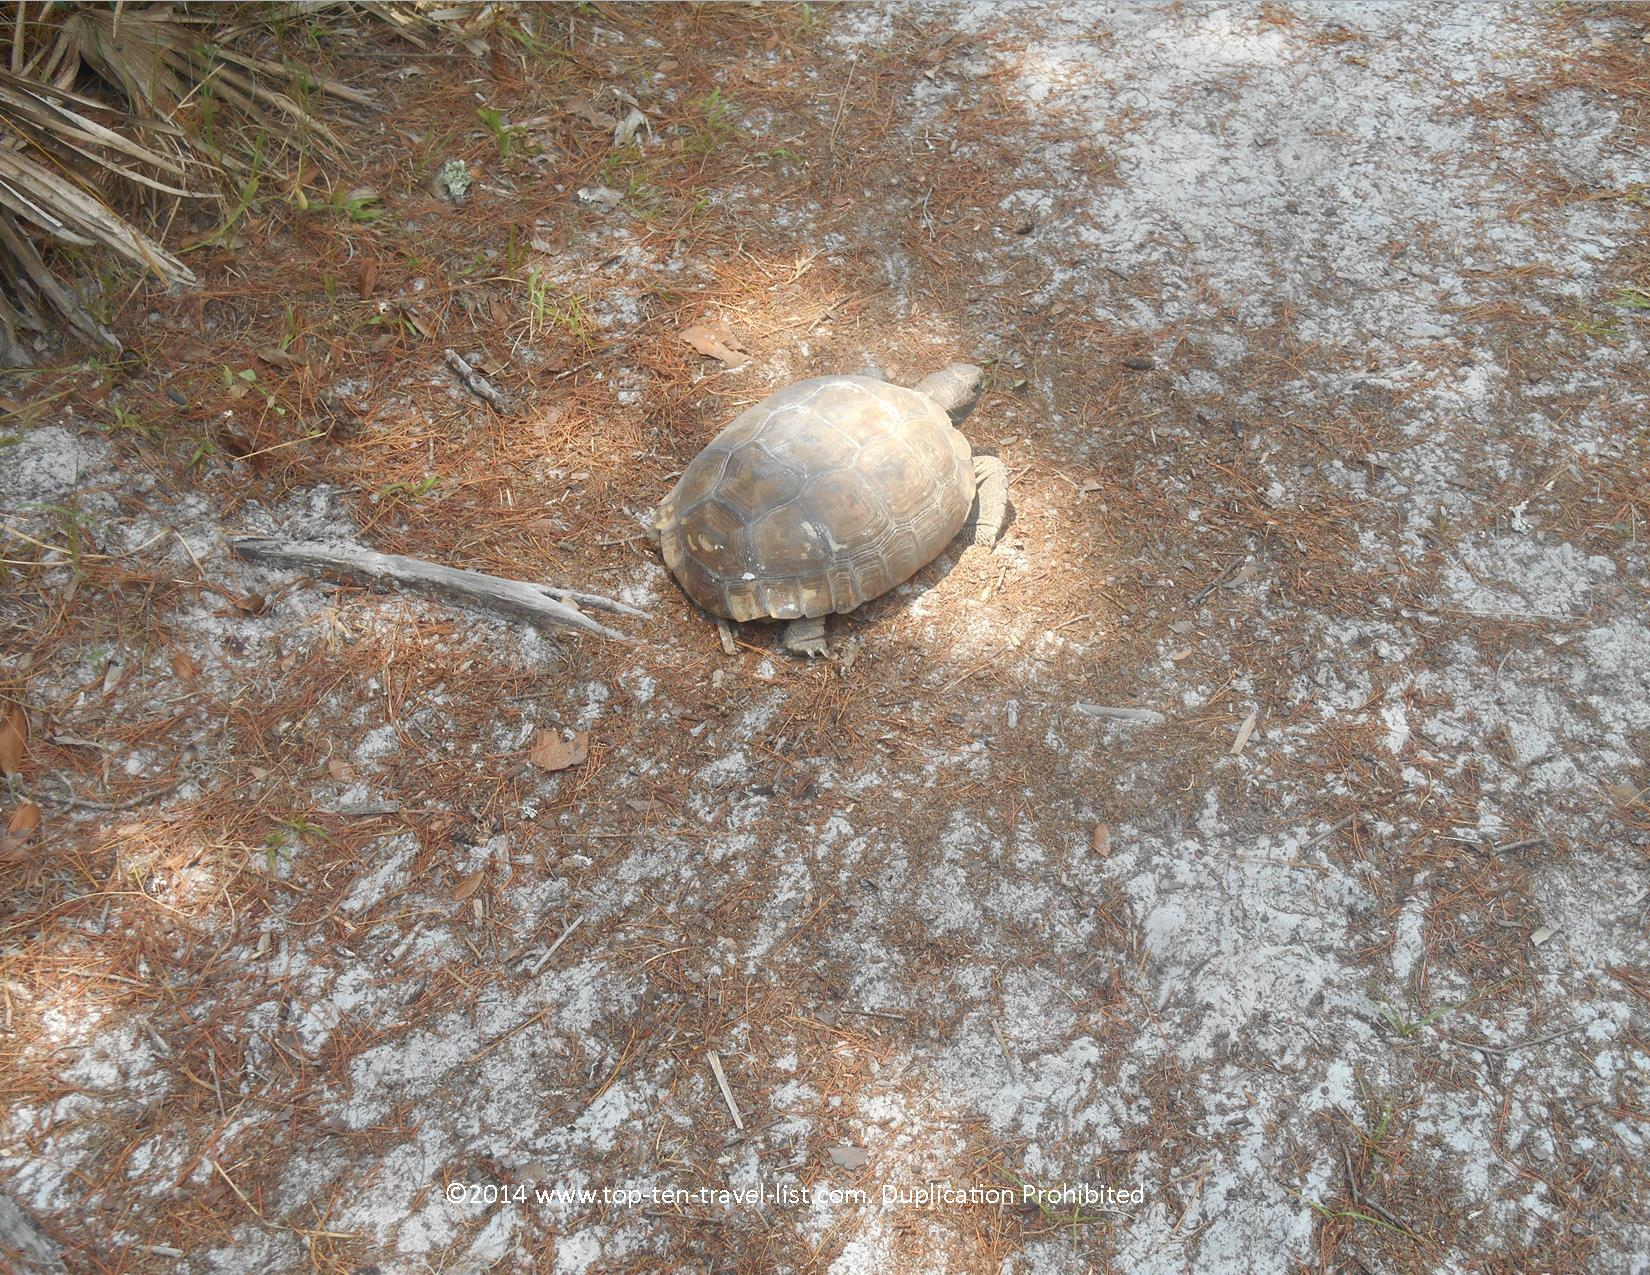 Gopher tortoise in Orlando, Florida